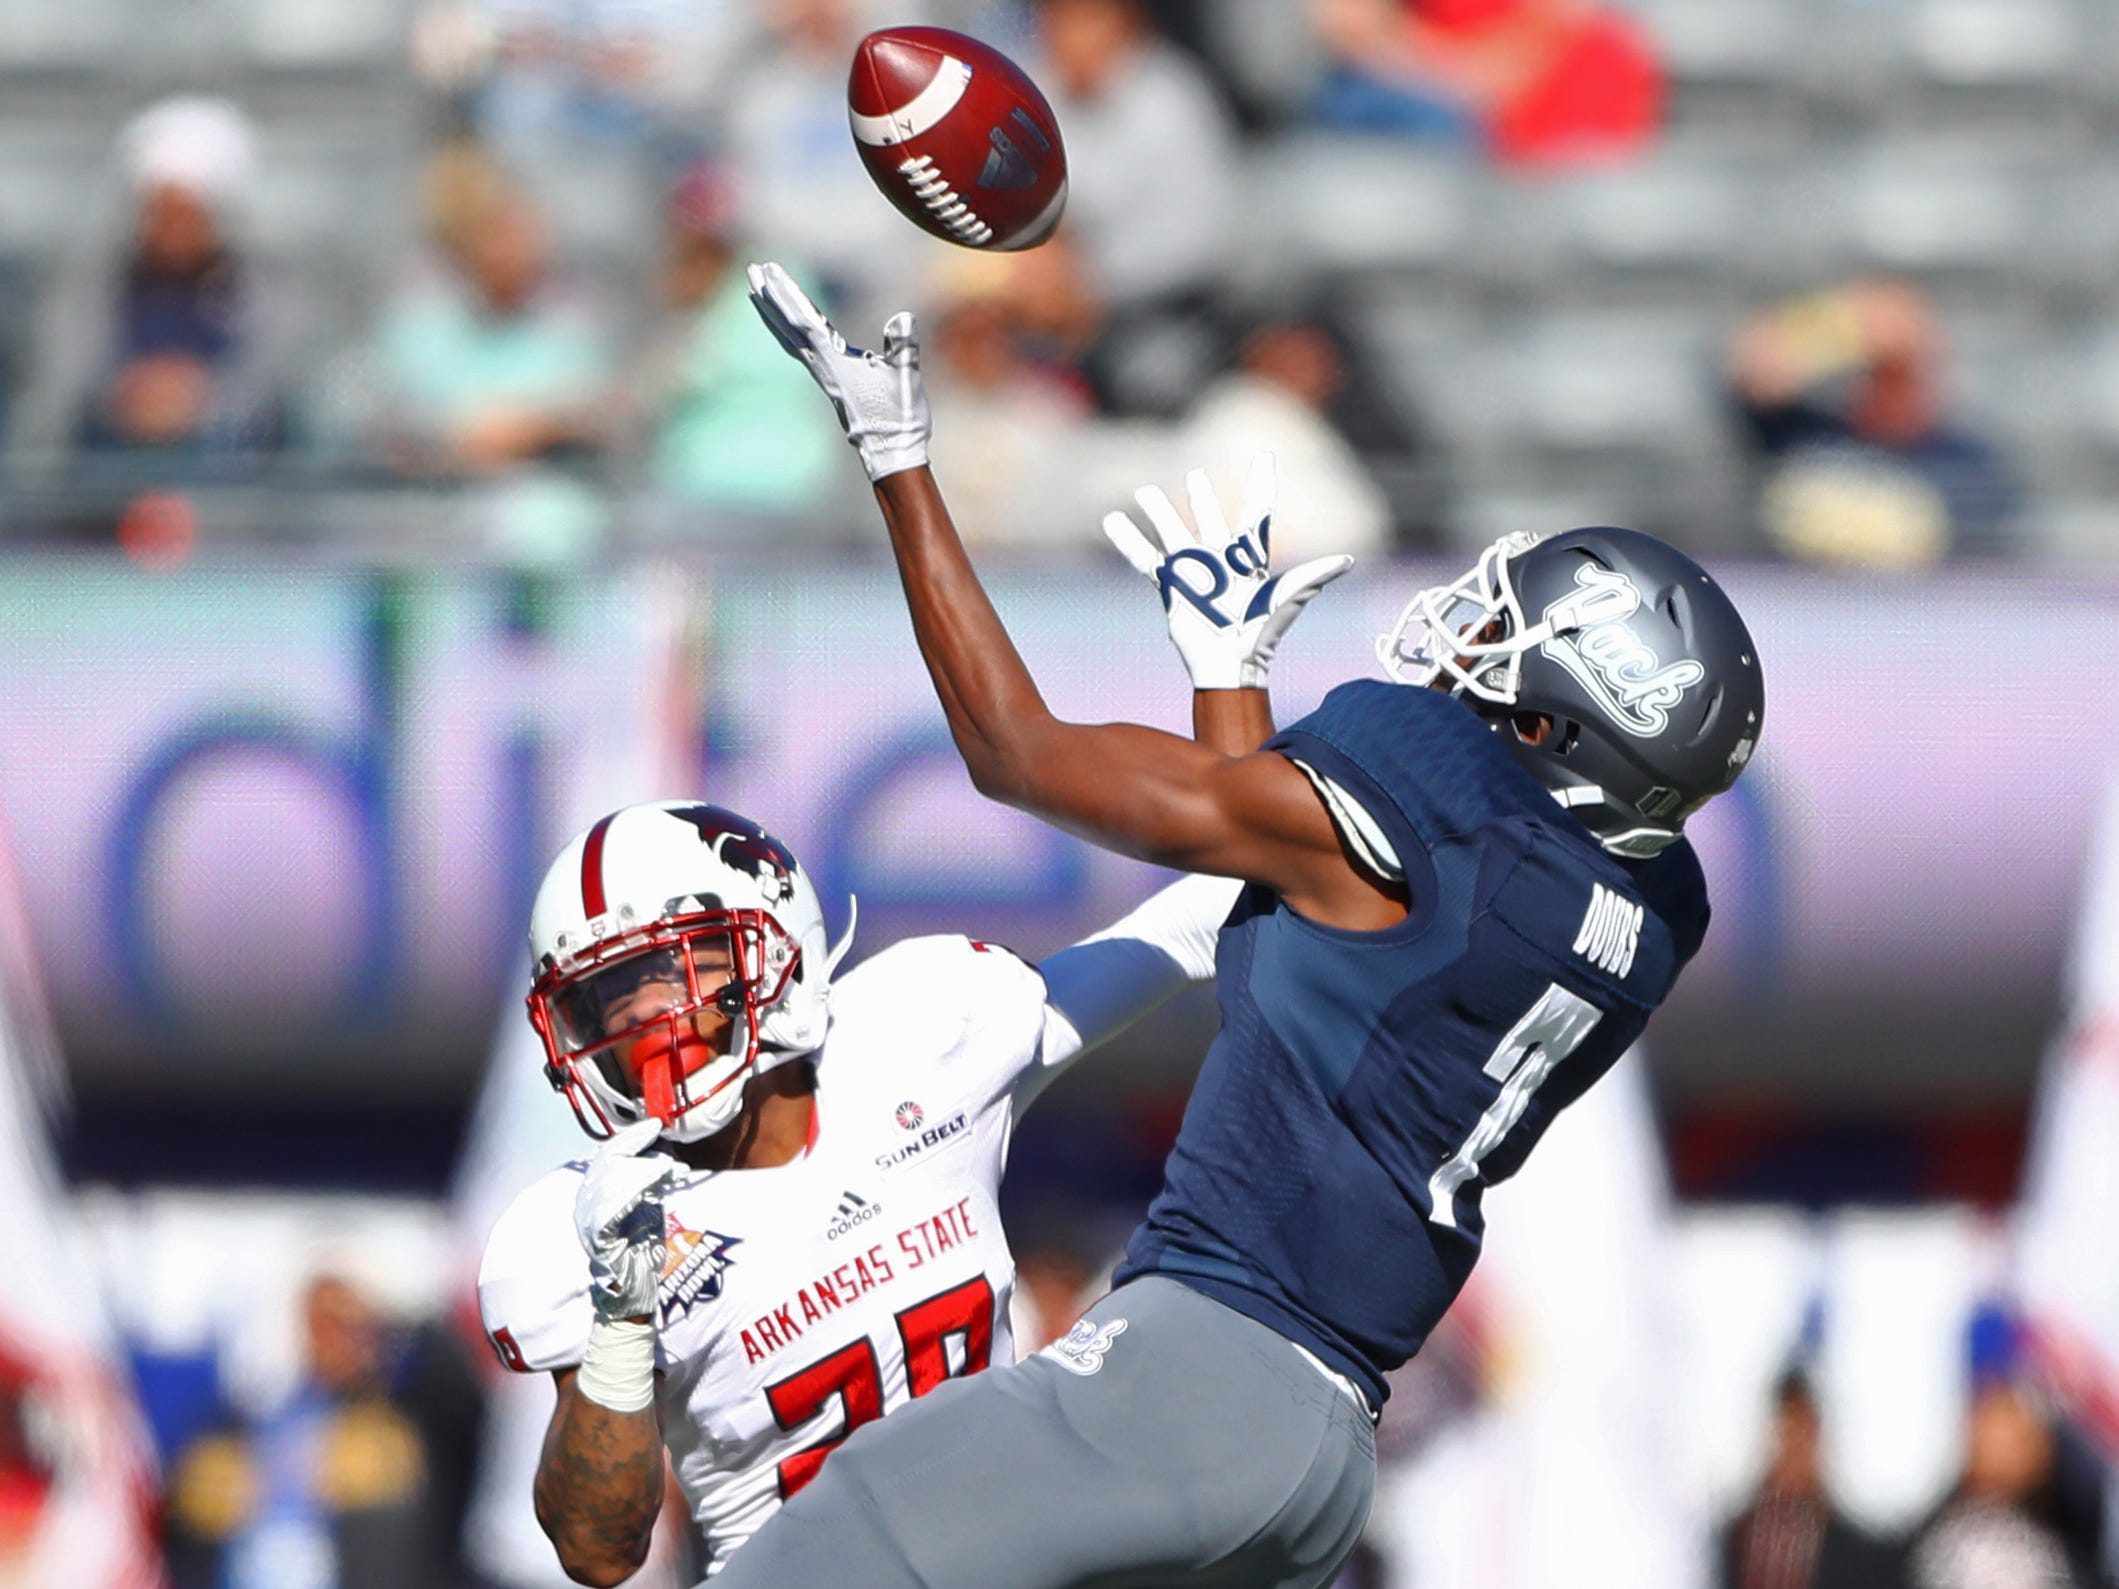 Dec 29, 2018; Tucson, AZ, USA; Arkansas State Red Wolves defensive back Brandon Byner (28) breaks up a pass intended for Nevada Wolf Pack wide receiver Romeo Doubs (7) in the first half of the 2018 Arizona Bowl at Arizona Stadium.